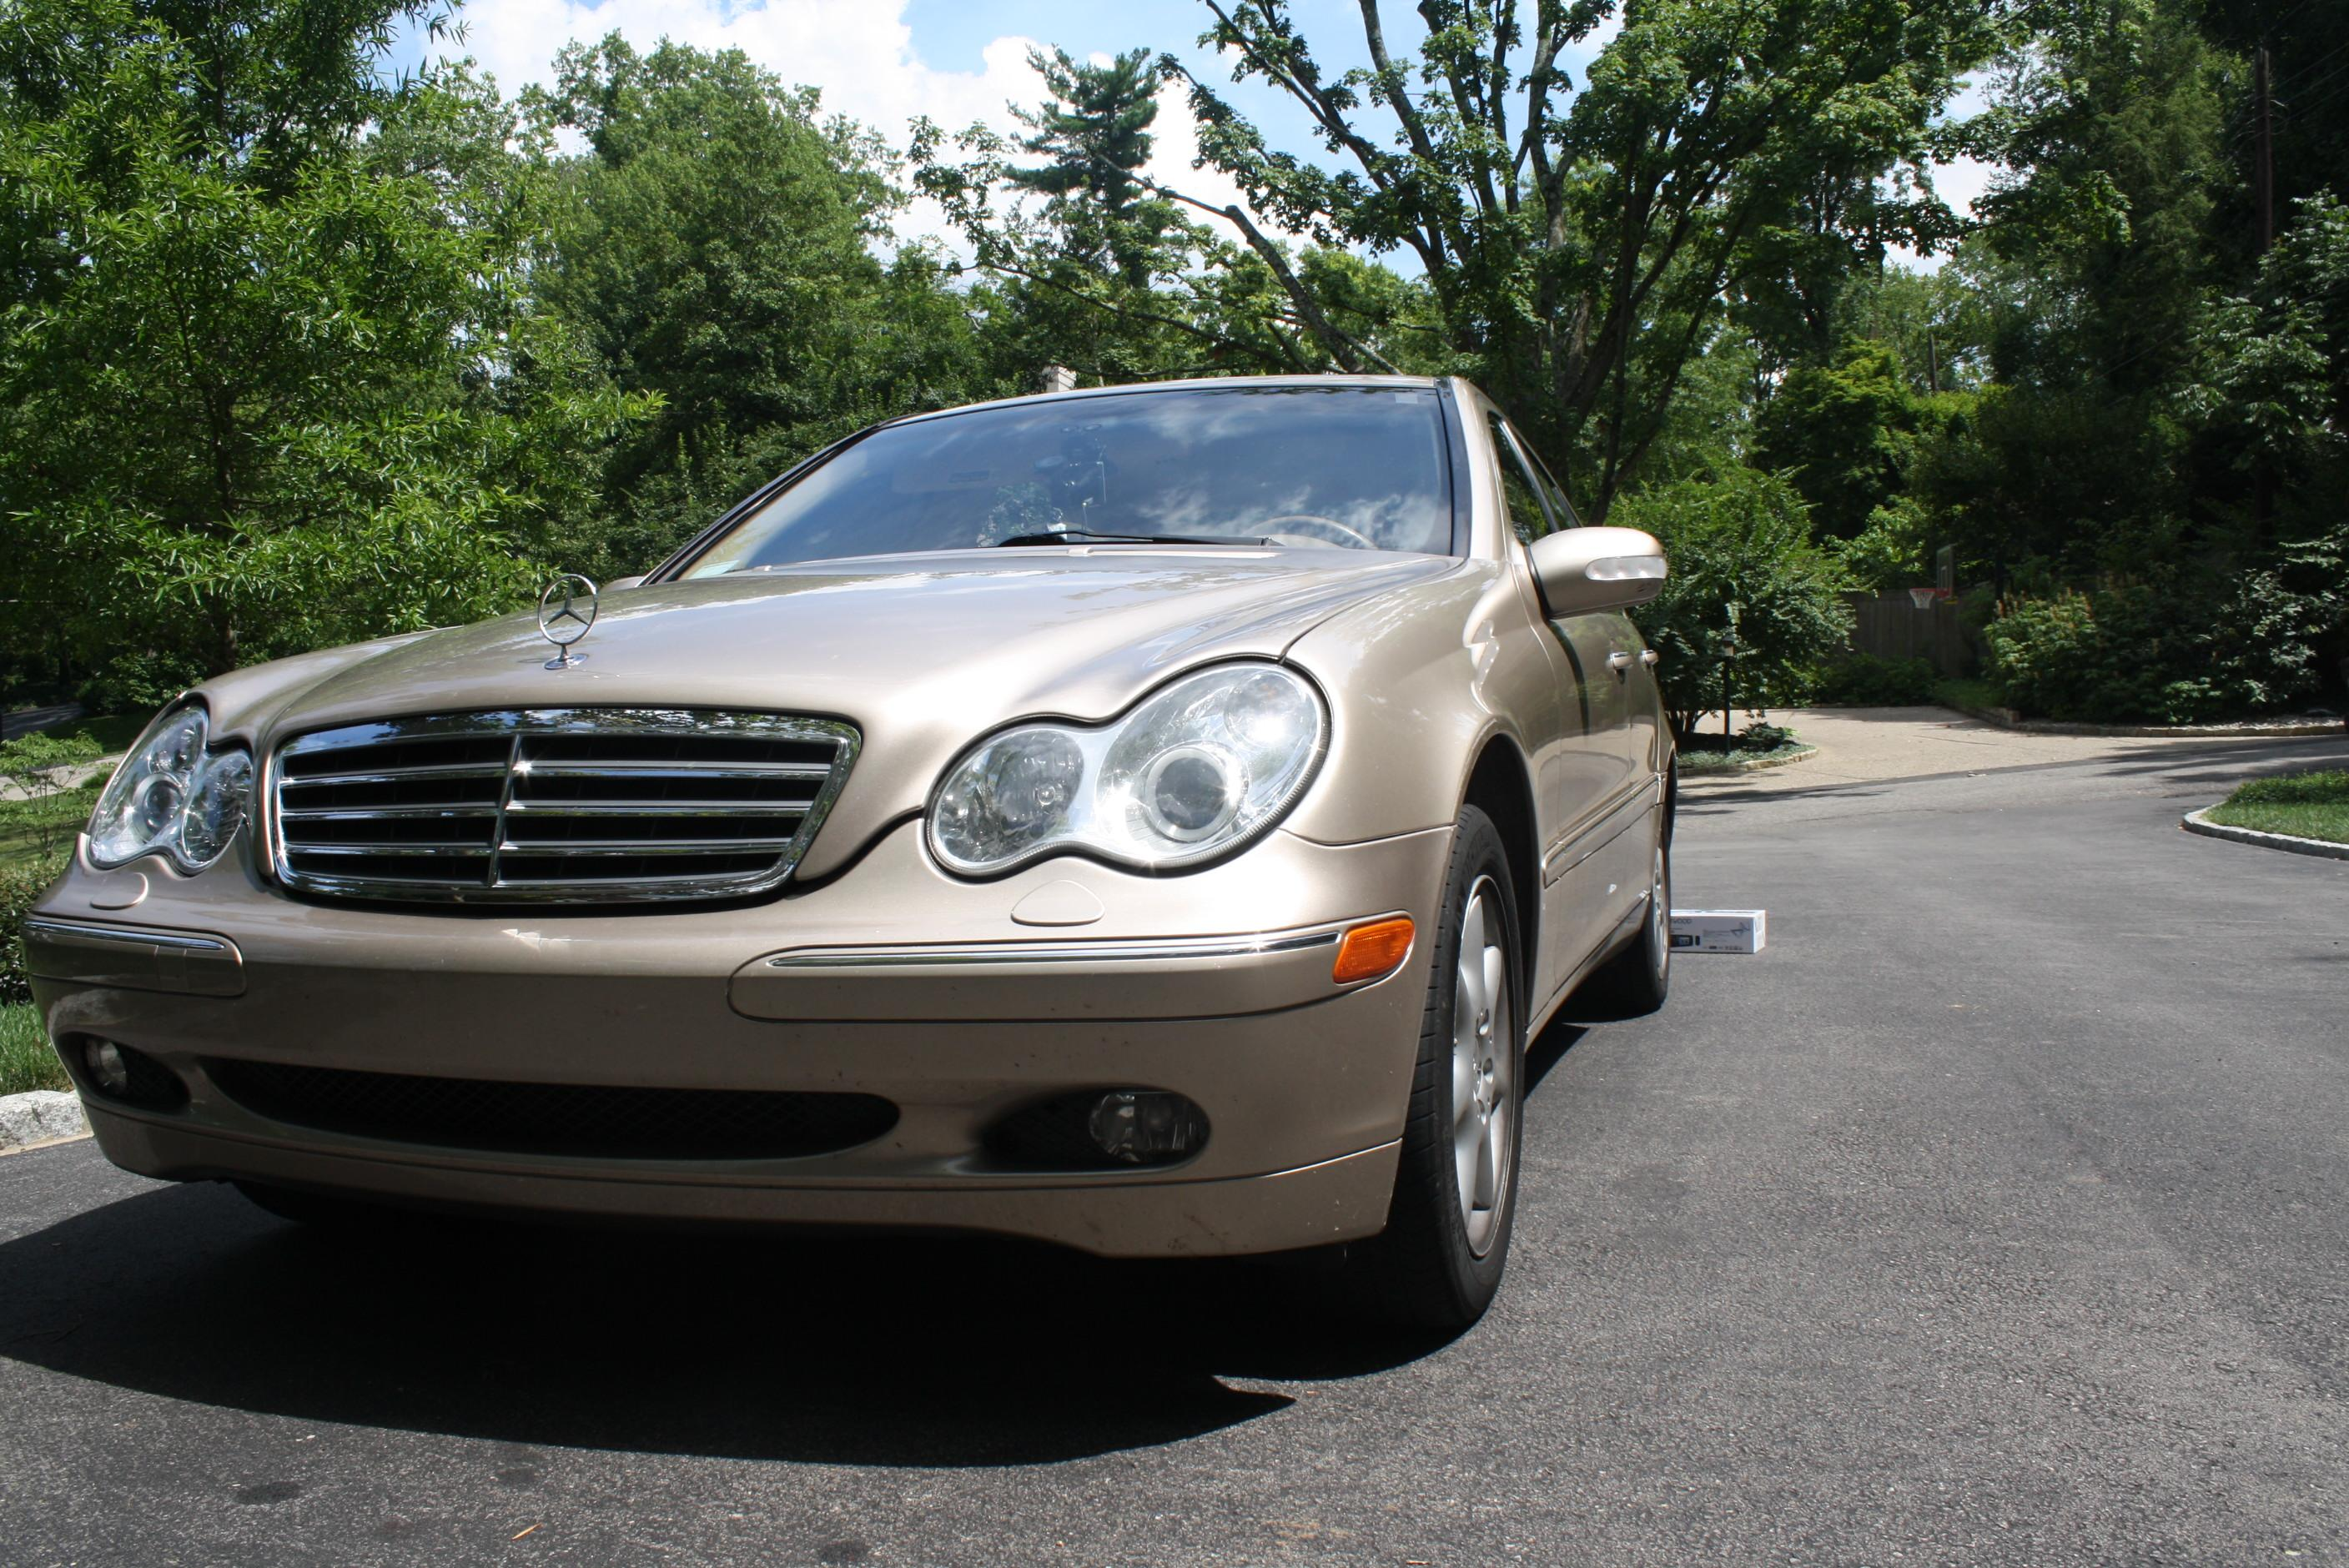 Mercedesman17 2005 mercedes benz c classc240 4matic sedan for 2005 mercedes benz c class